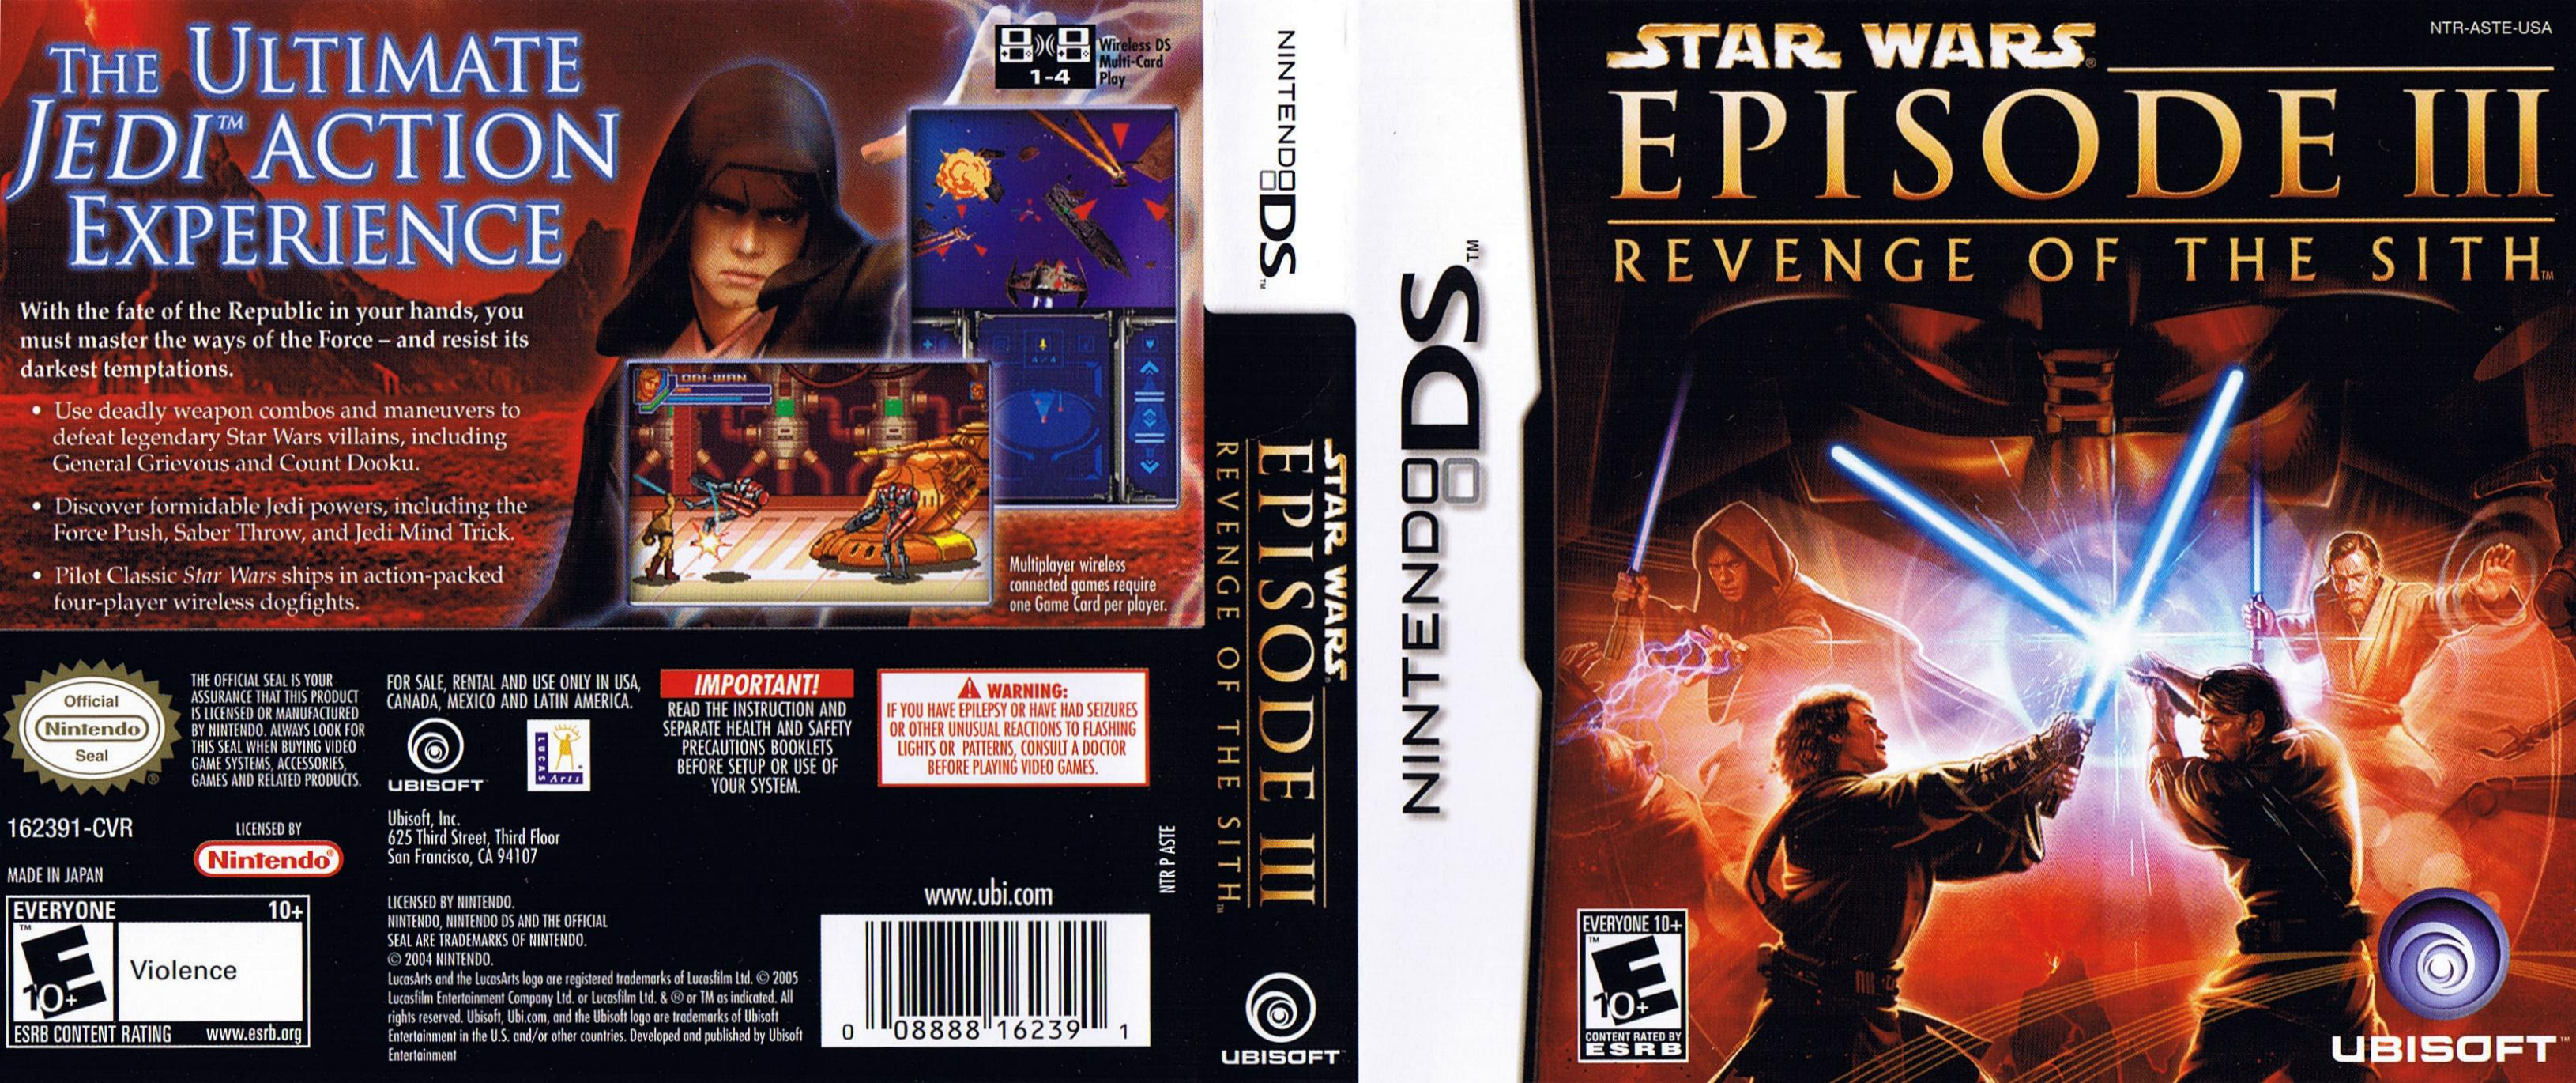 Star Wars Episode Iii Revenge Of The Sith Nintendo Ds Covers Cover Century Over 500 000 Album Art Covers For Free